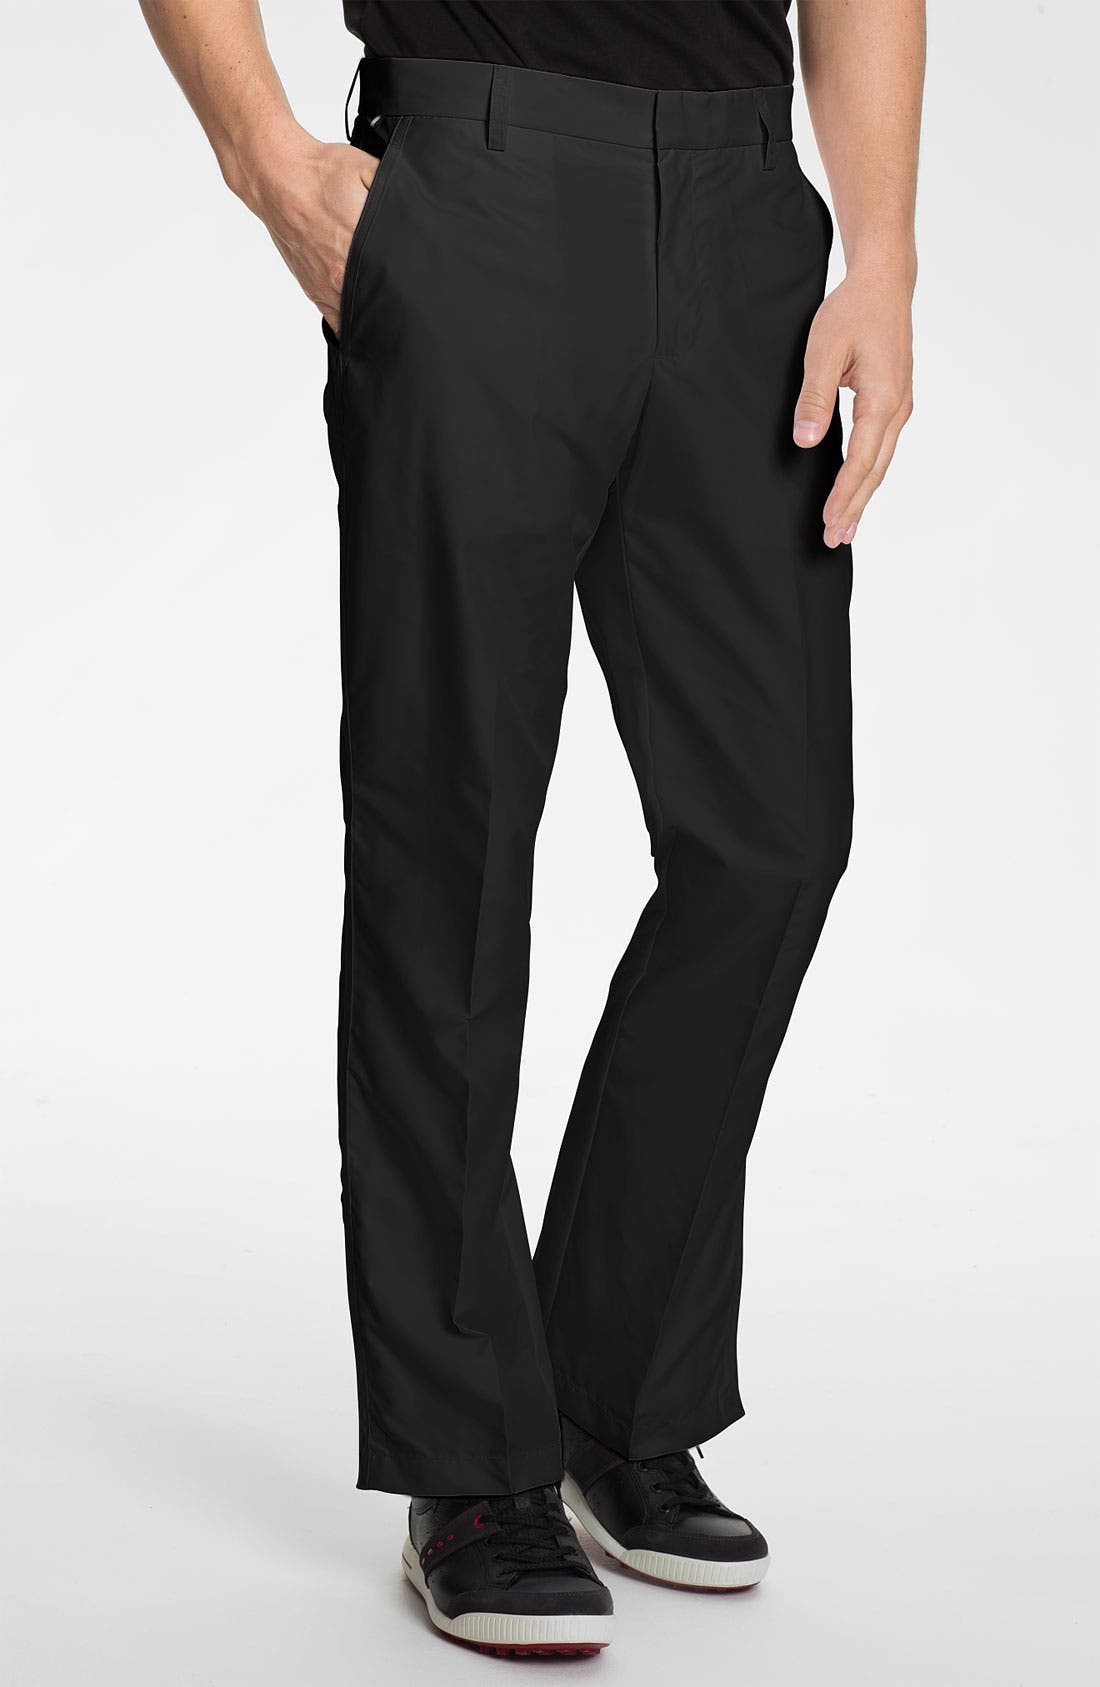 Main Image - J. Lindeberg Golf 'Troyan' Micro Twill Golf Pants (Online Only)